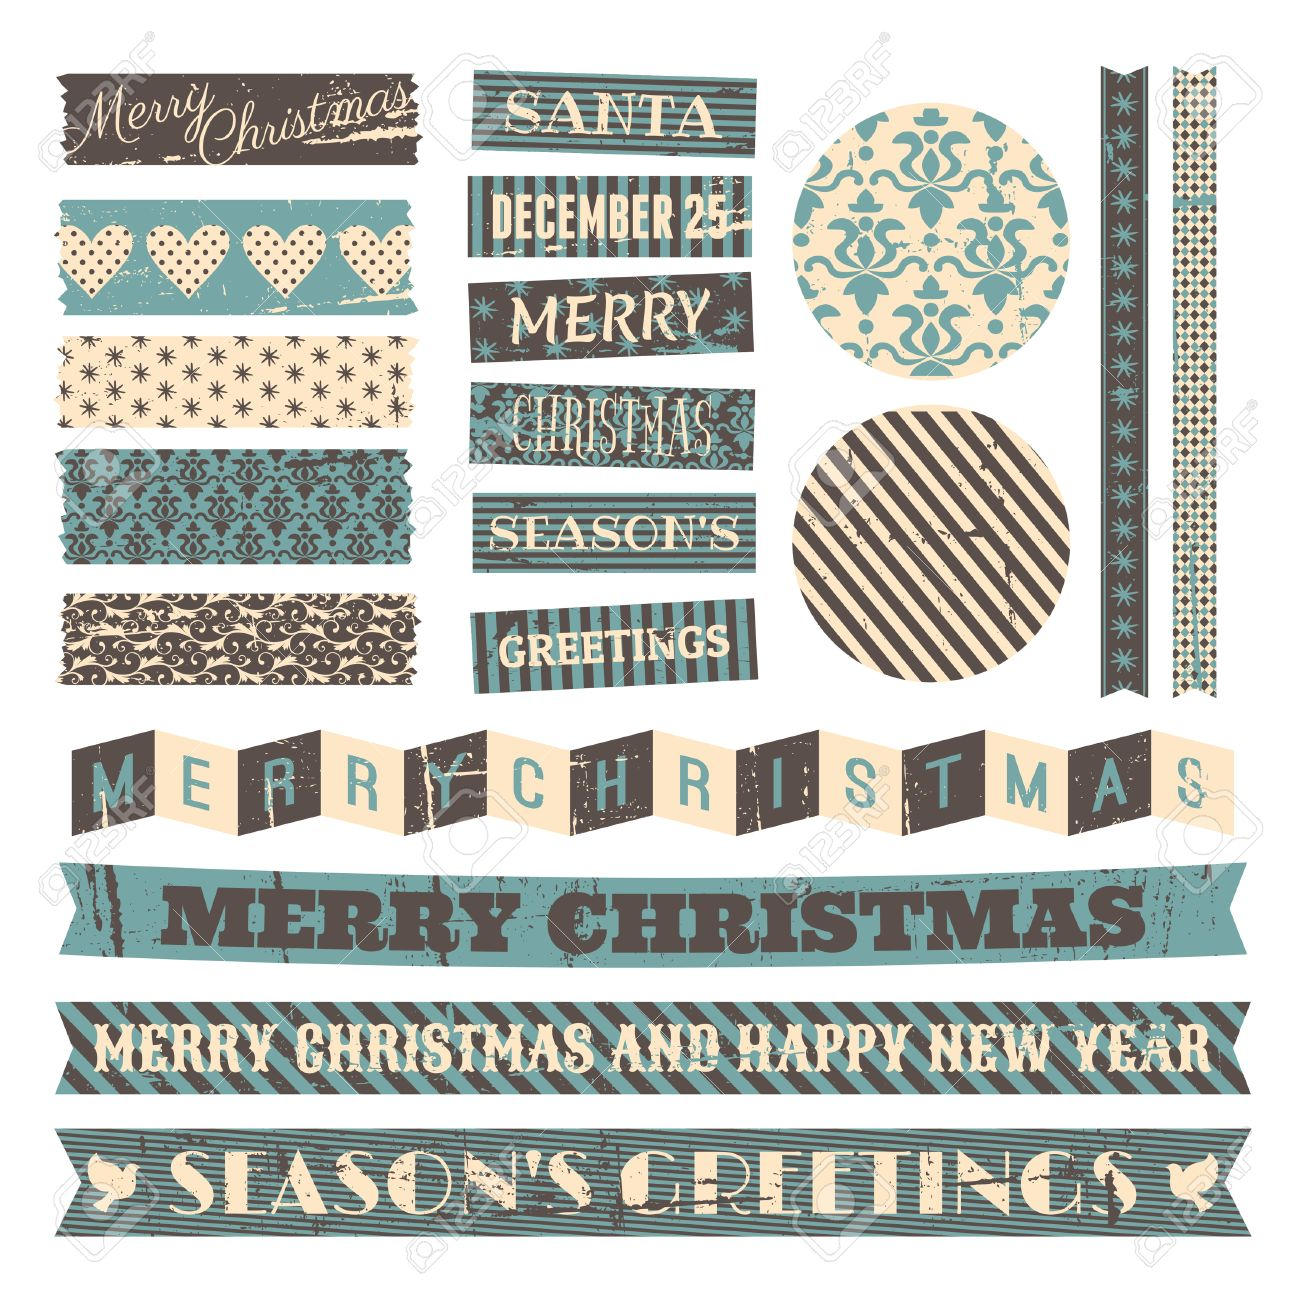 A set of vintage design elements for Christmas isolated on white. Stock Vector - 23516183